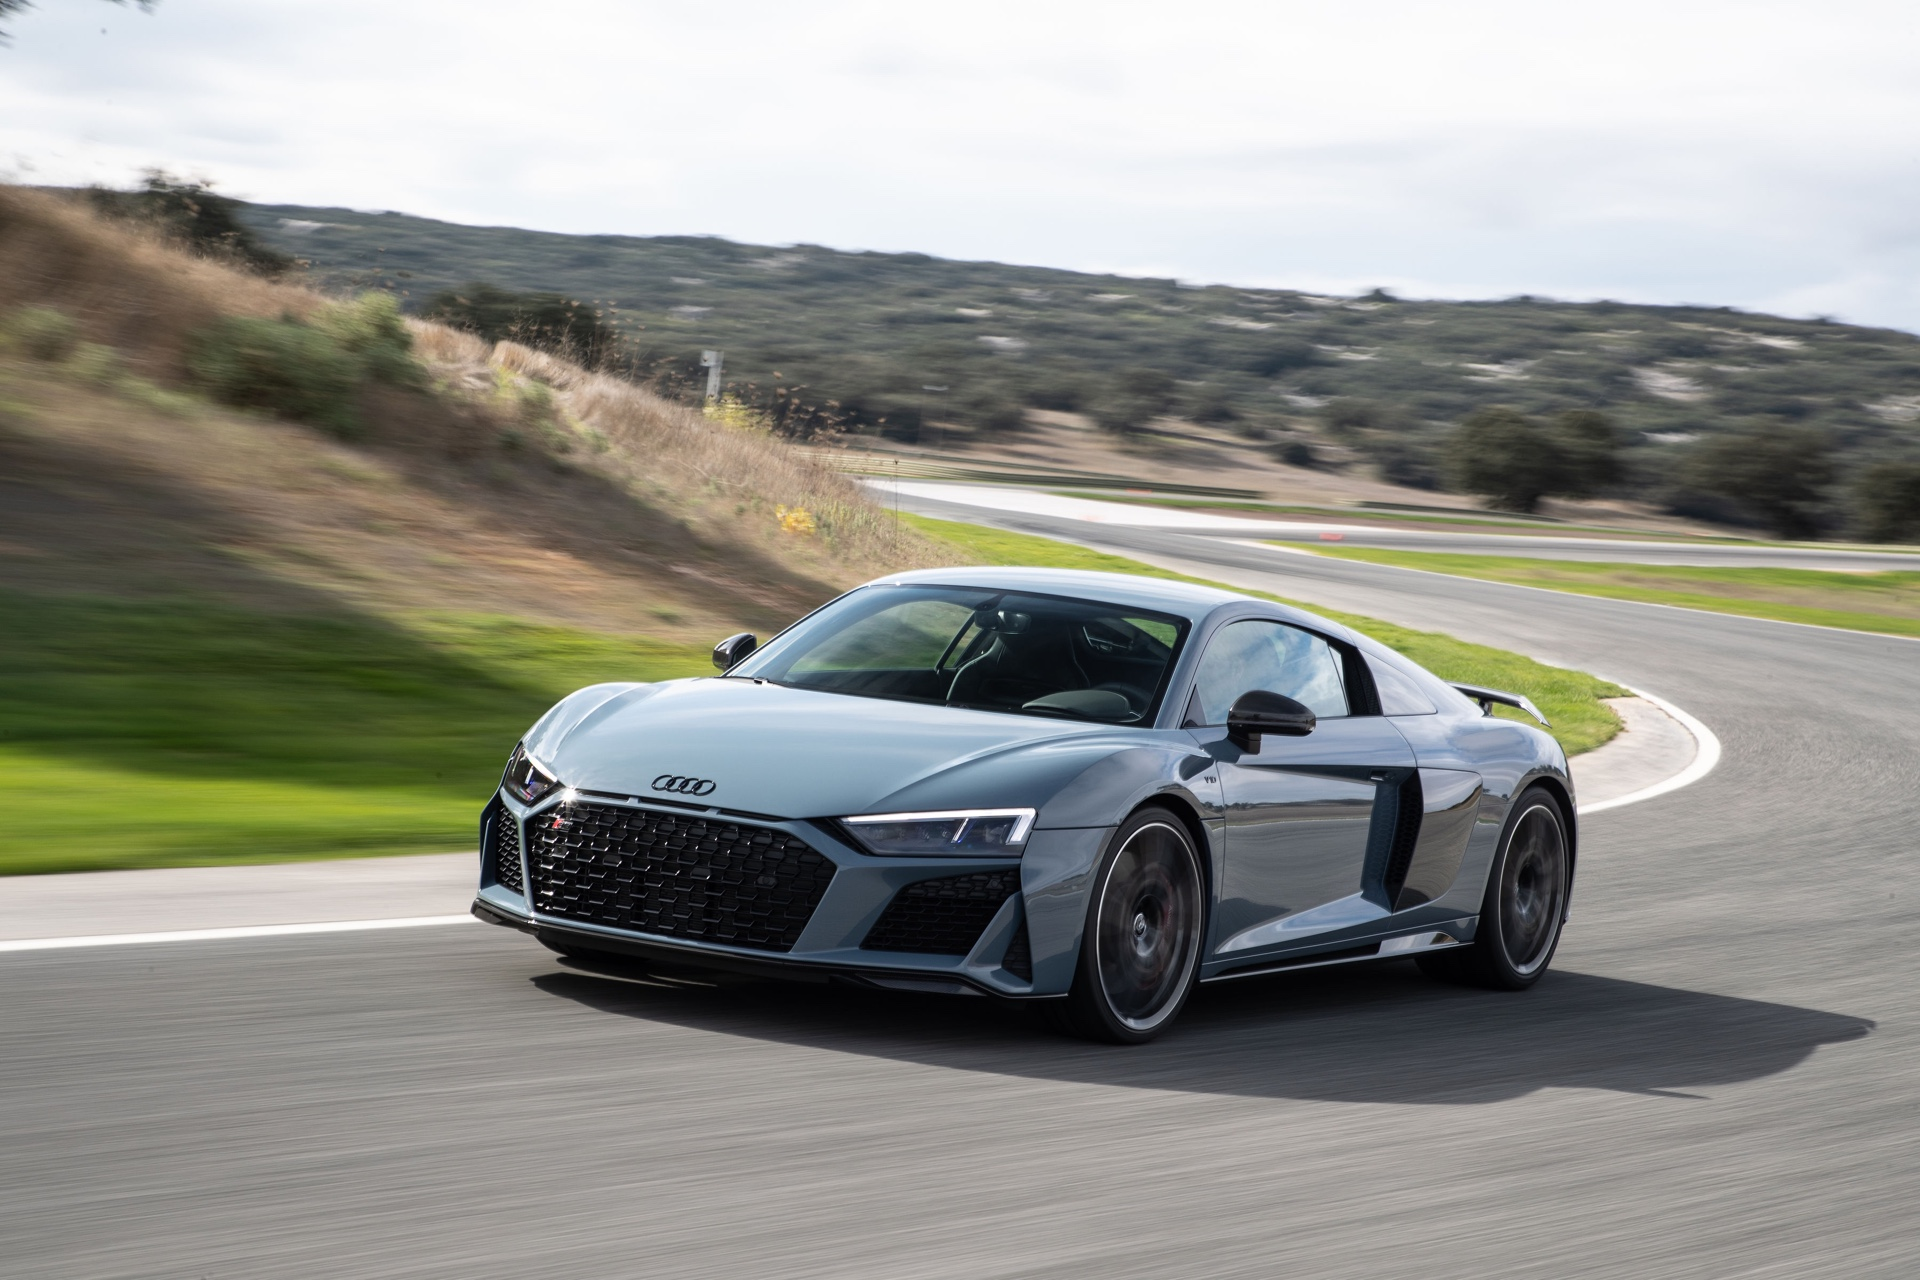 2019 audi r8 performance review gtspirit. Black Bedroom Furniture Sets. Home Design Ideas